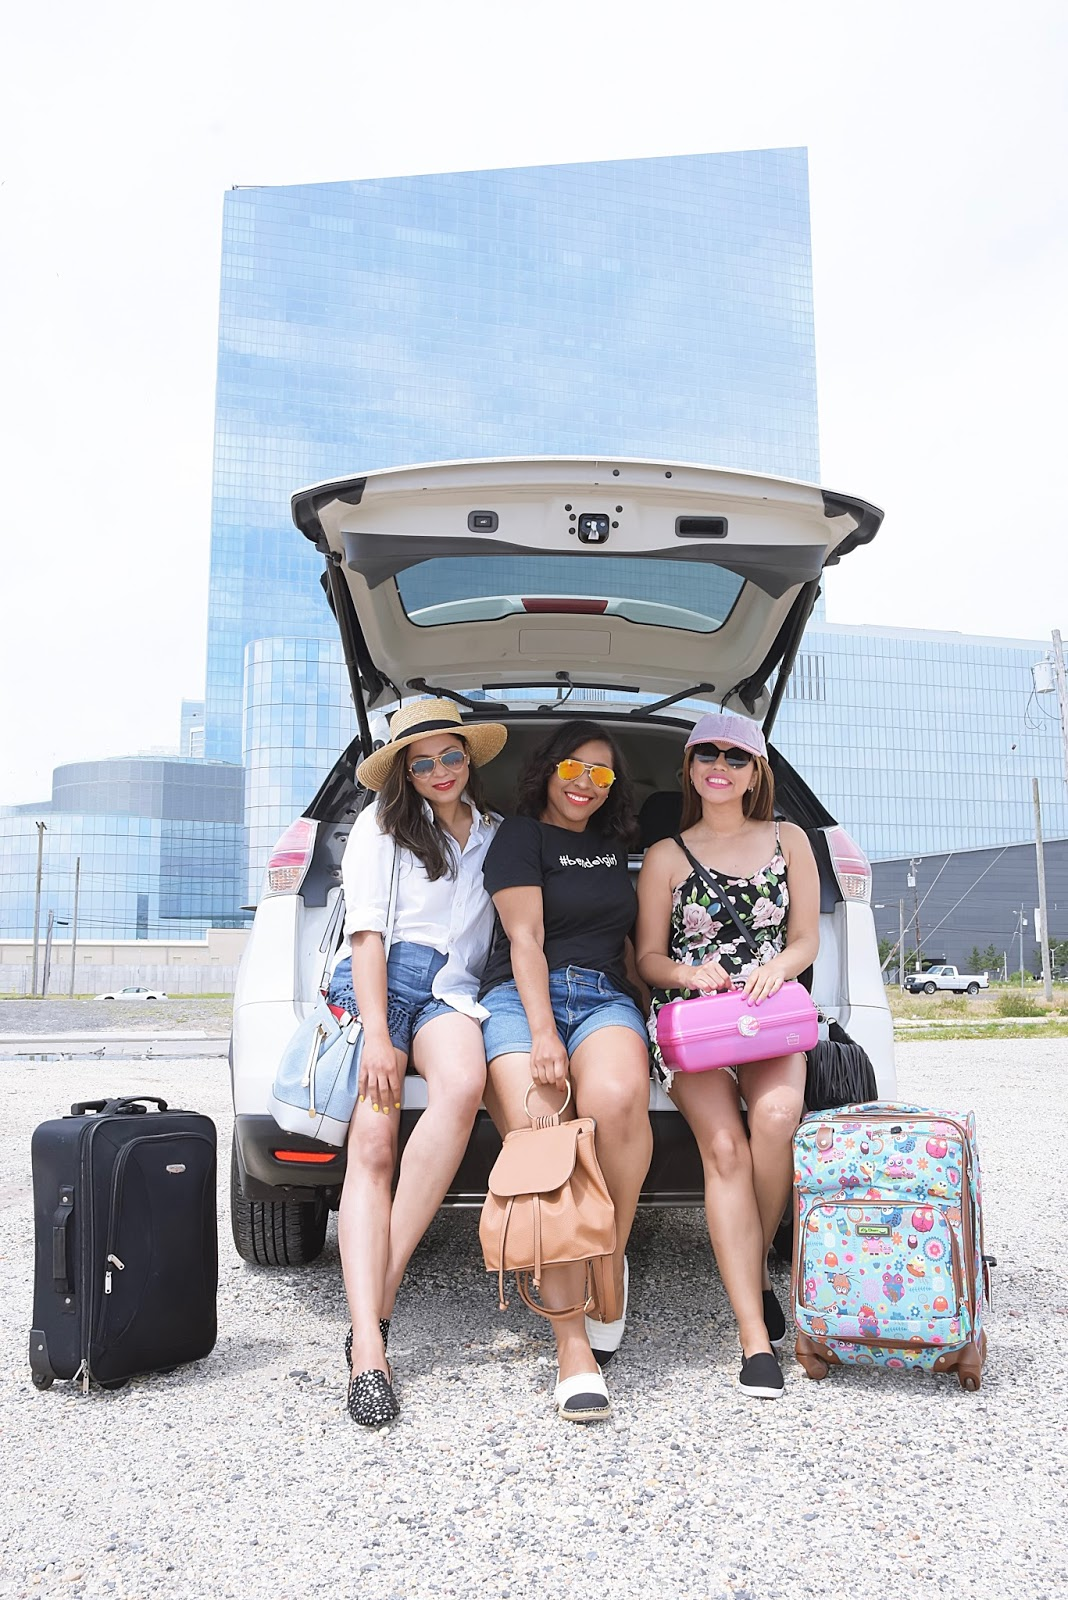 Lets Hit The Road! Essentials For Your Next Girls Road Trip, girls getaway, road trip, travel, travel blog, trip advisor, travel bloggers, luggage, nissan, suv, nissan rouge